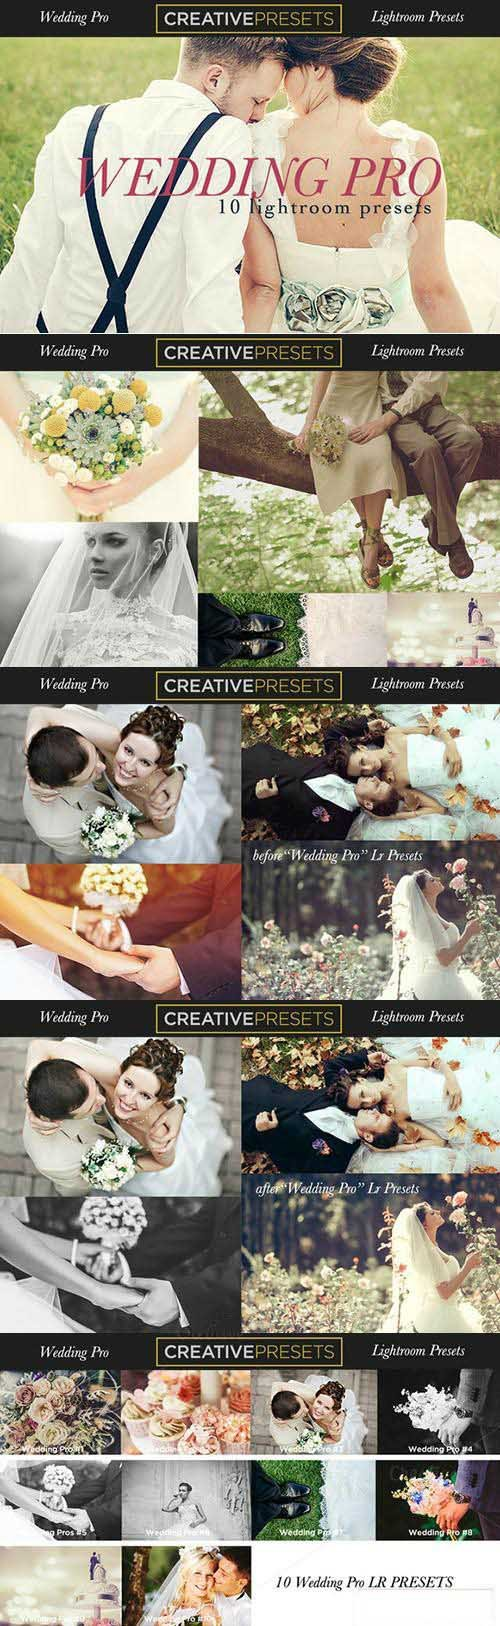 Wedding Pro 10 Lightroom Presets